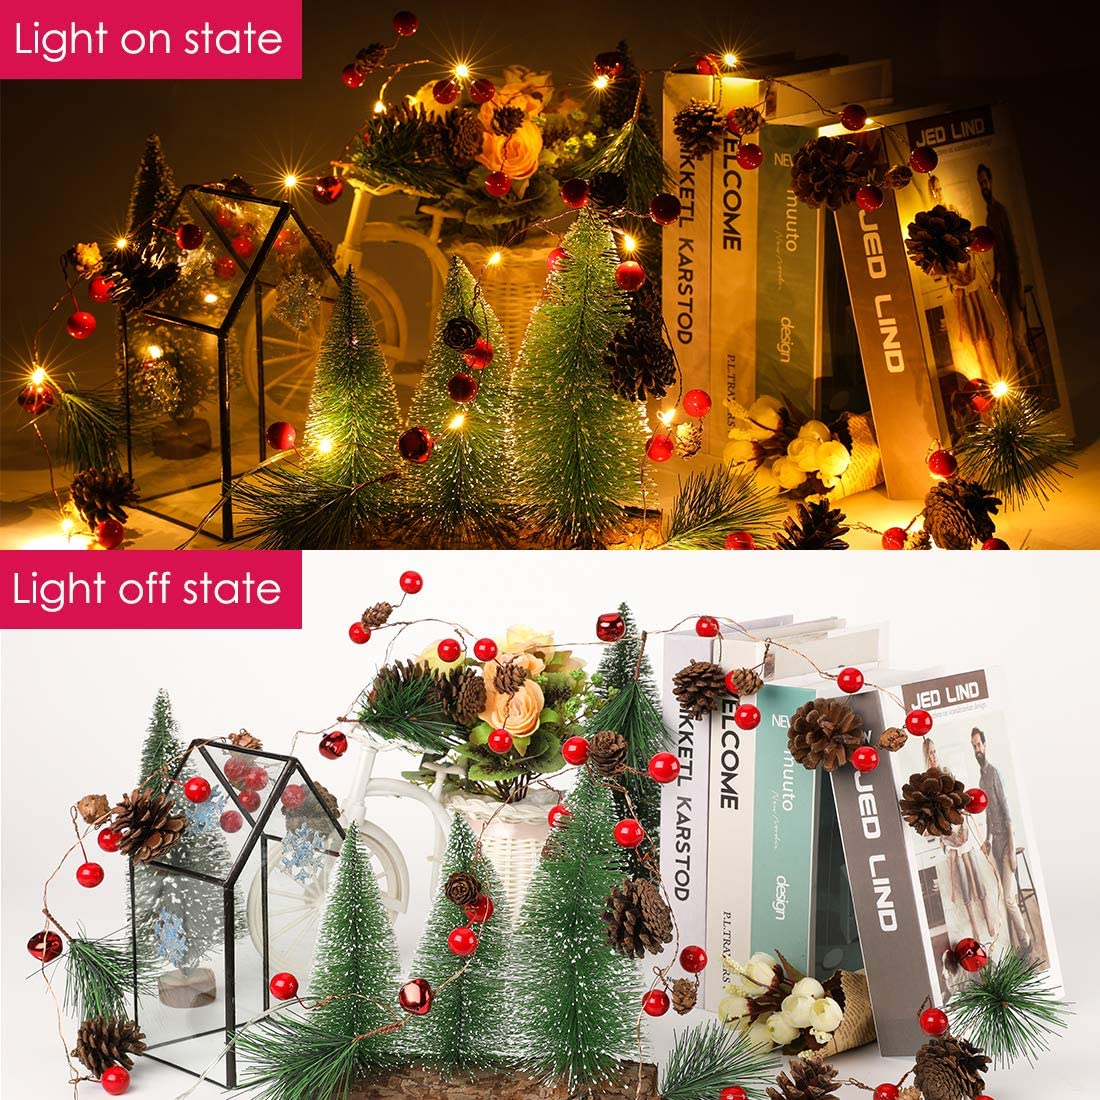 6.5FT 20 LED Christmas Garland with Lights led Garland String Lights Red Berry Pine Cone Garland Lights Battery Operated Garland for Fireplace Christmas Decorations for Home